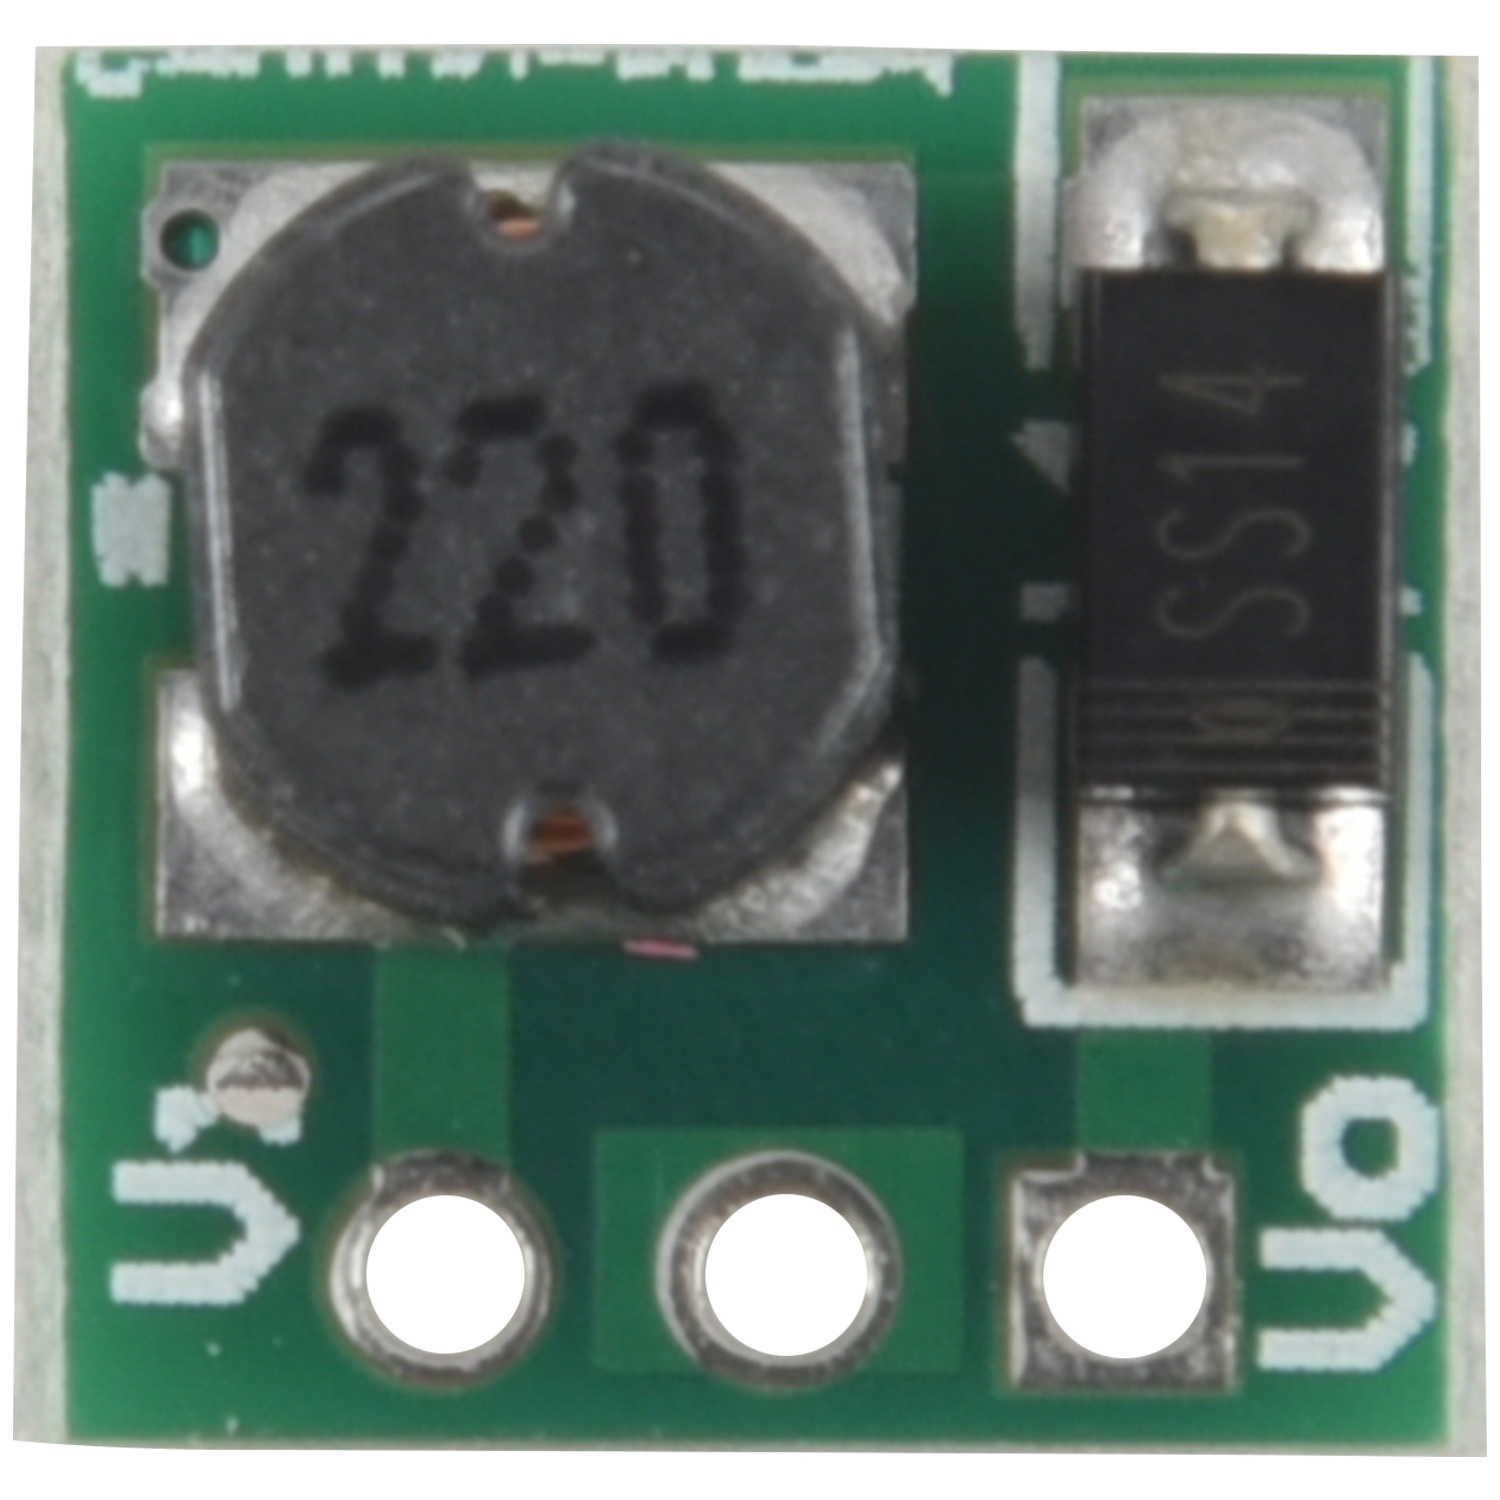 0.9-5V To 5V DC-DC Step-Up Power Module Voltage Boost Converter Board 1.5V 1.8V 2.5V 3V 3.3V 3.7V 4.2V To 5V Green tools for screen printing